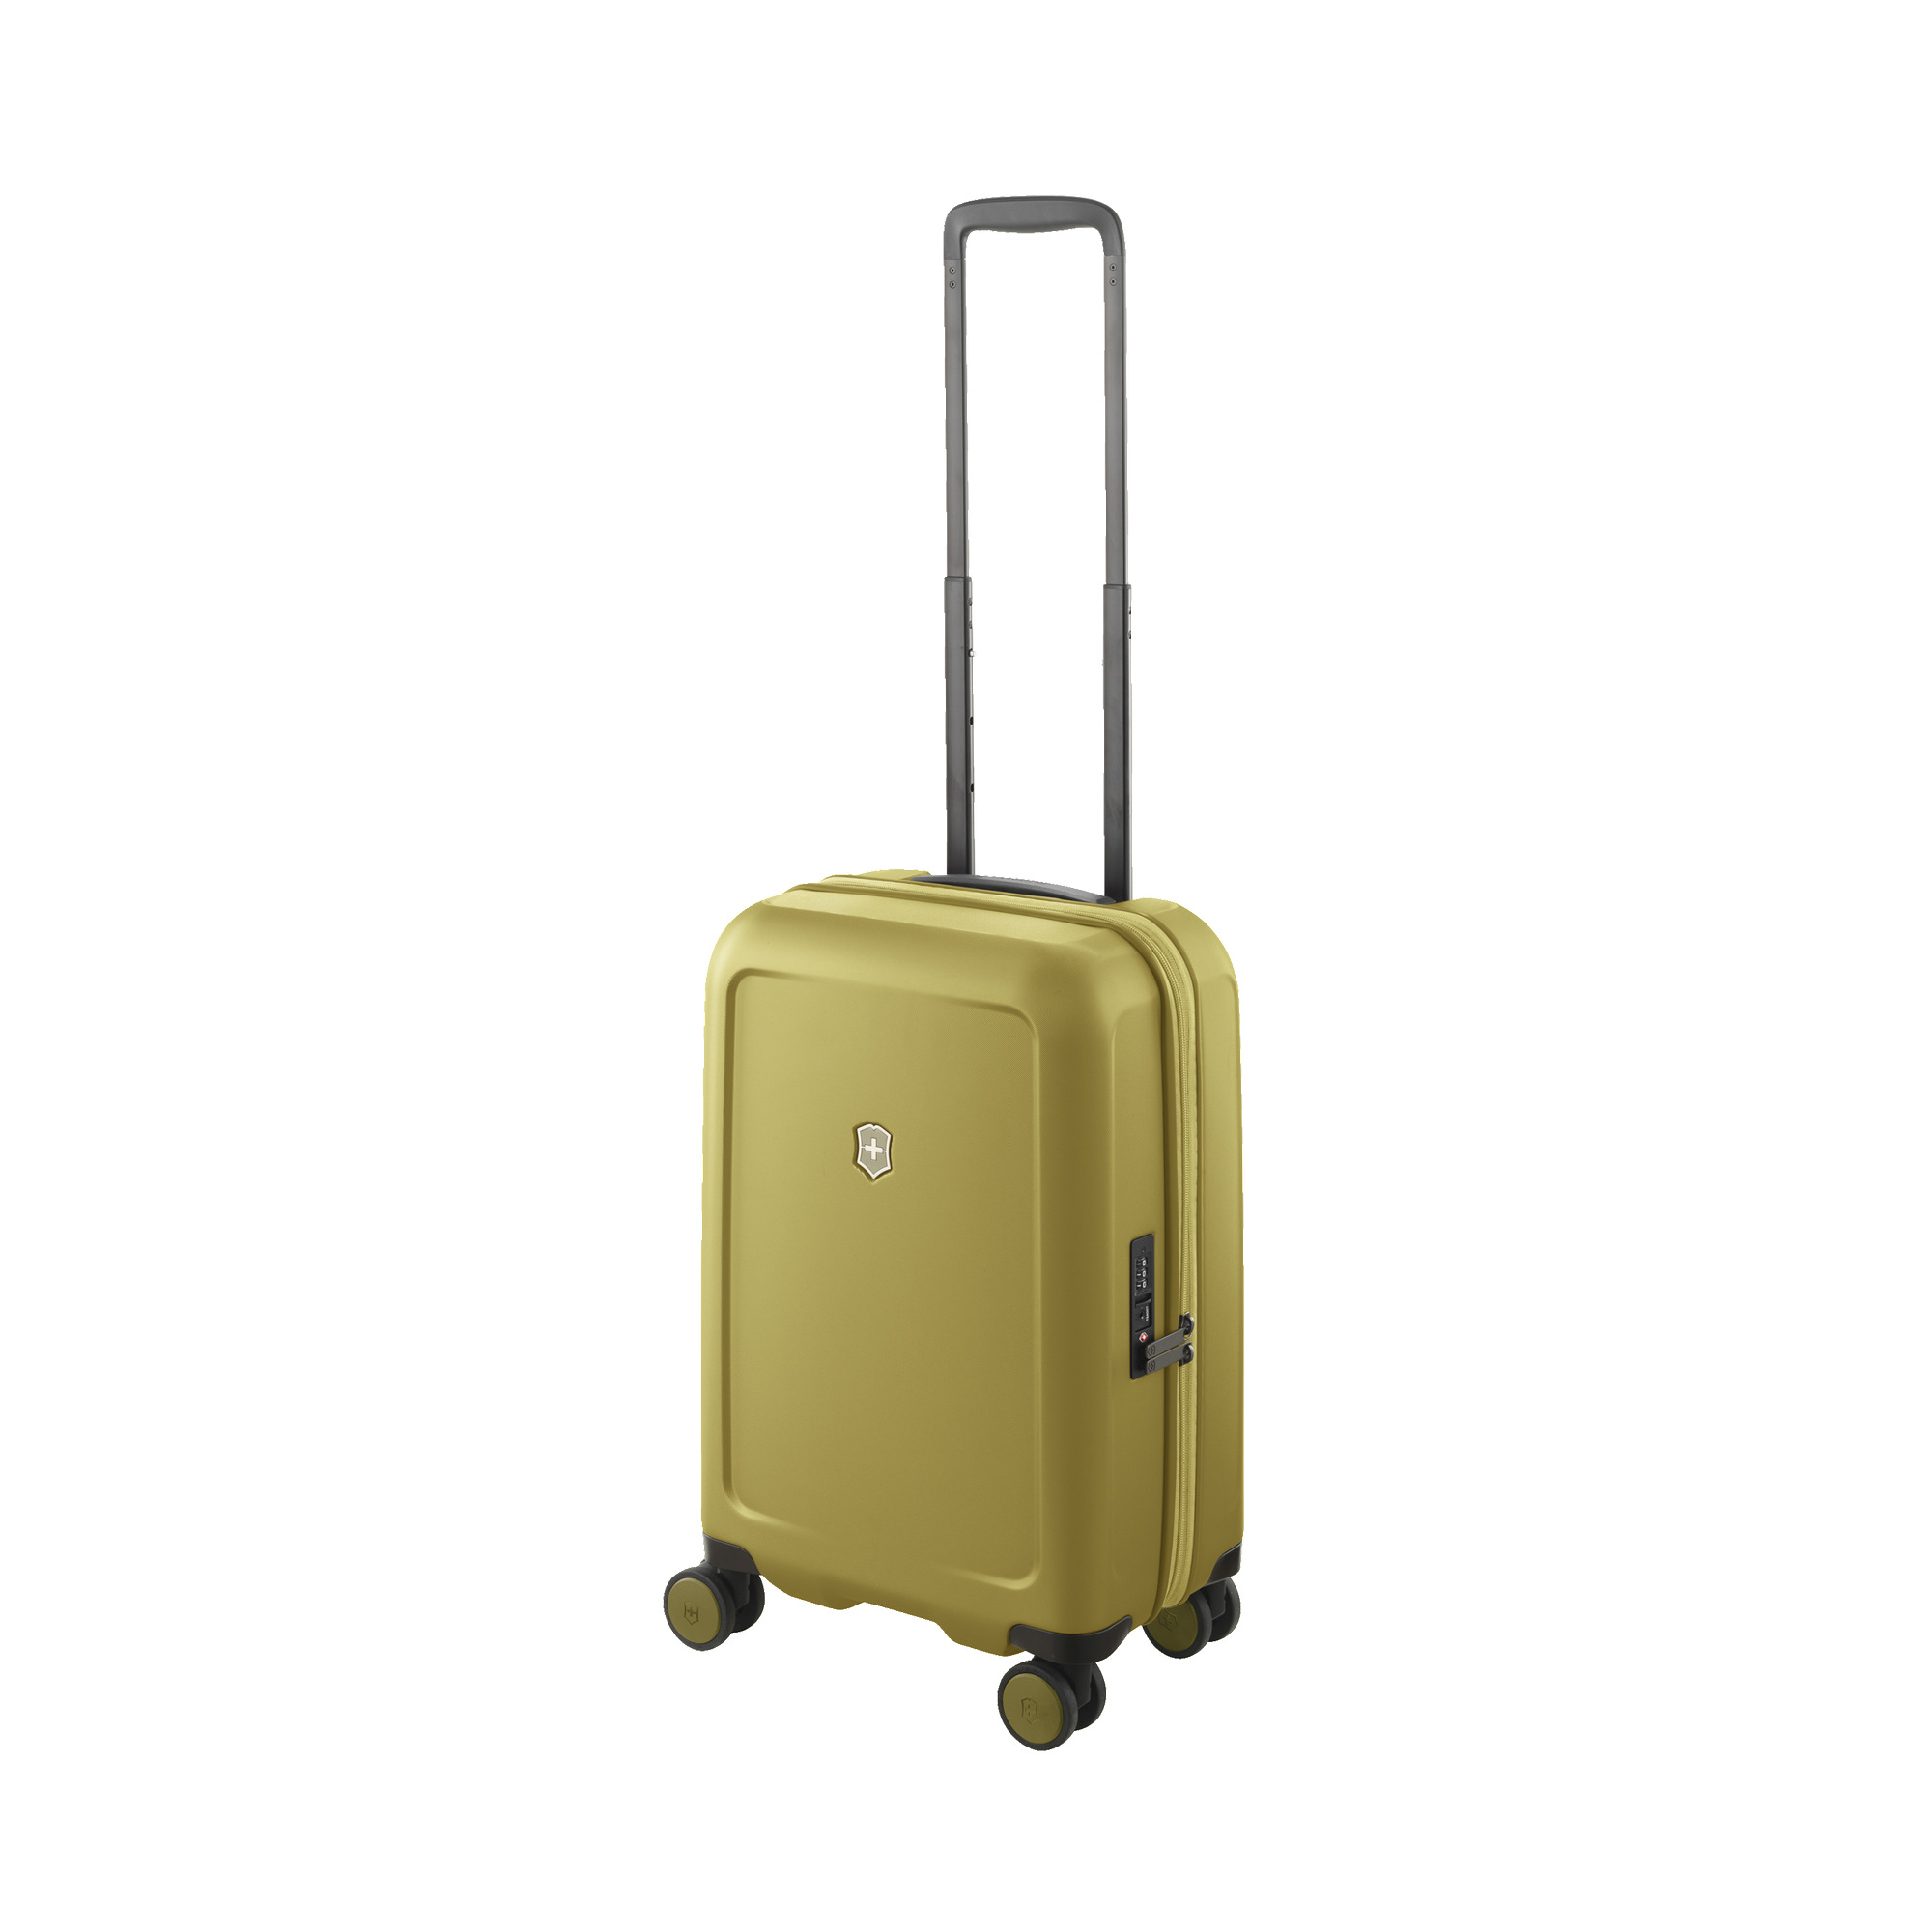 Victorinox Connex, Frequent Flyer Hardside Carry-On, Mustard